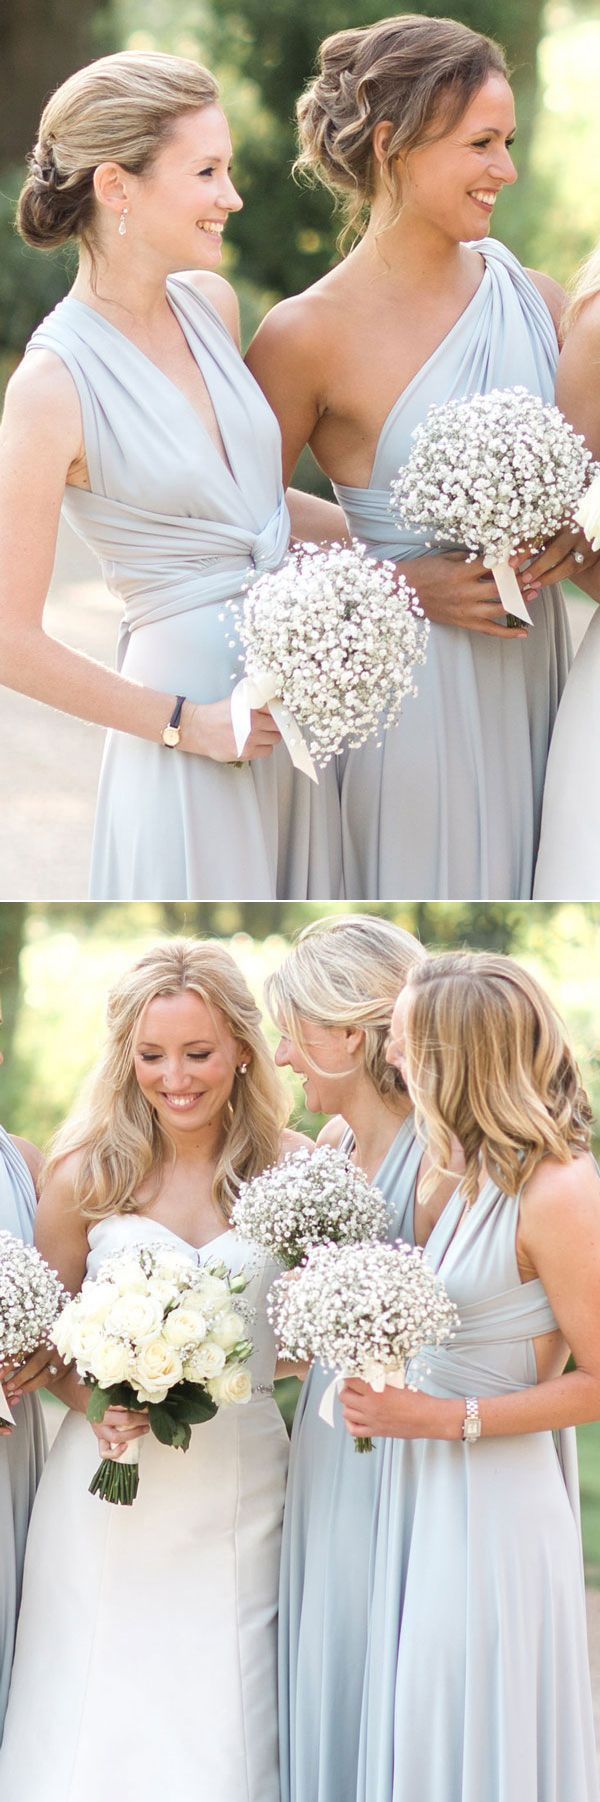 Wedding dresses for brides bridesmaid and flower girls dusty